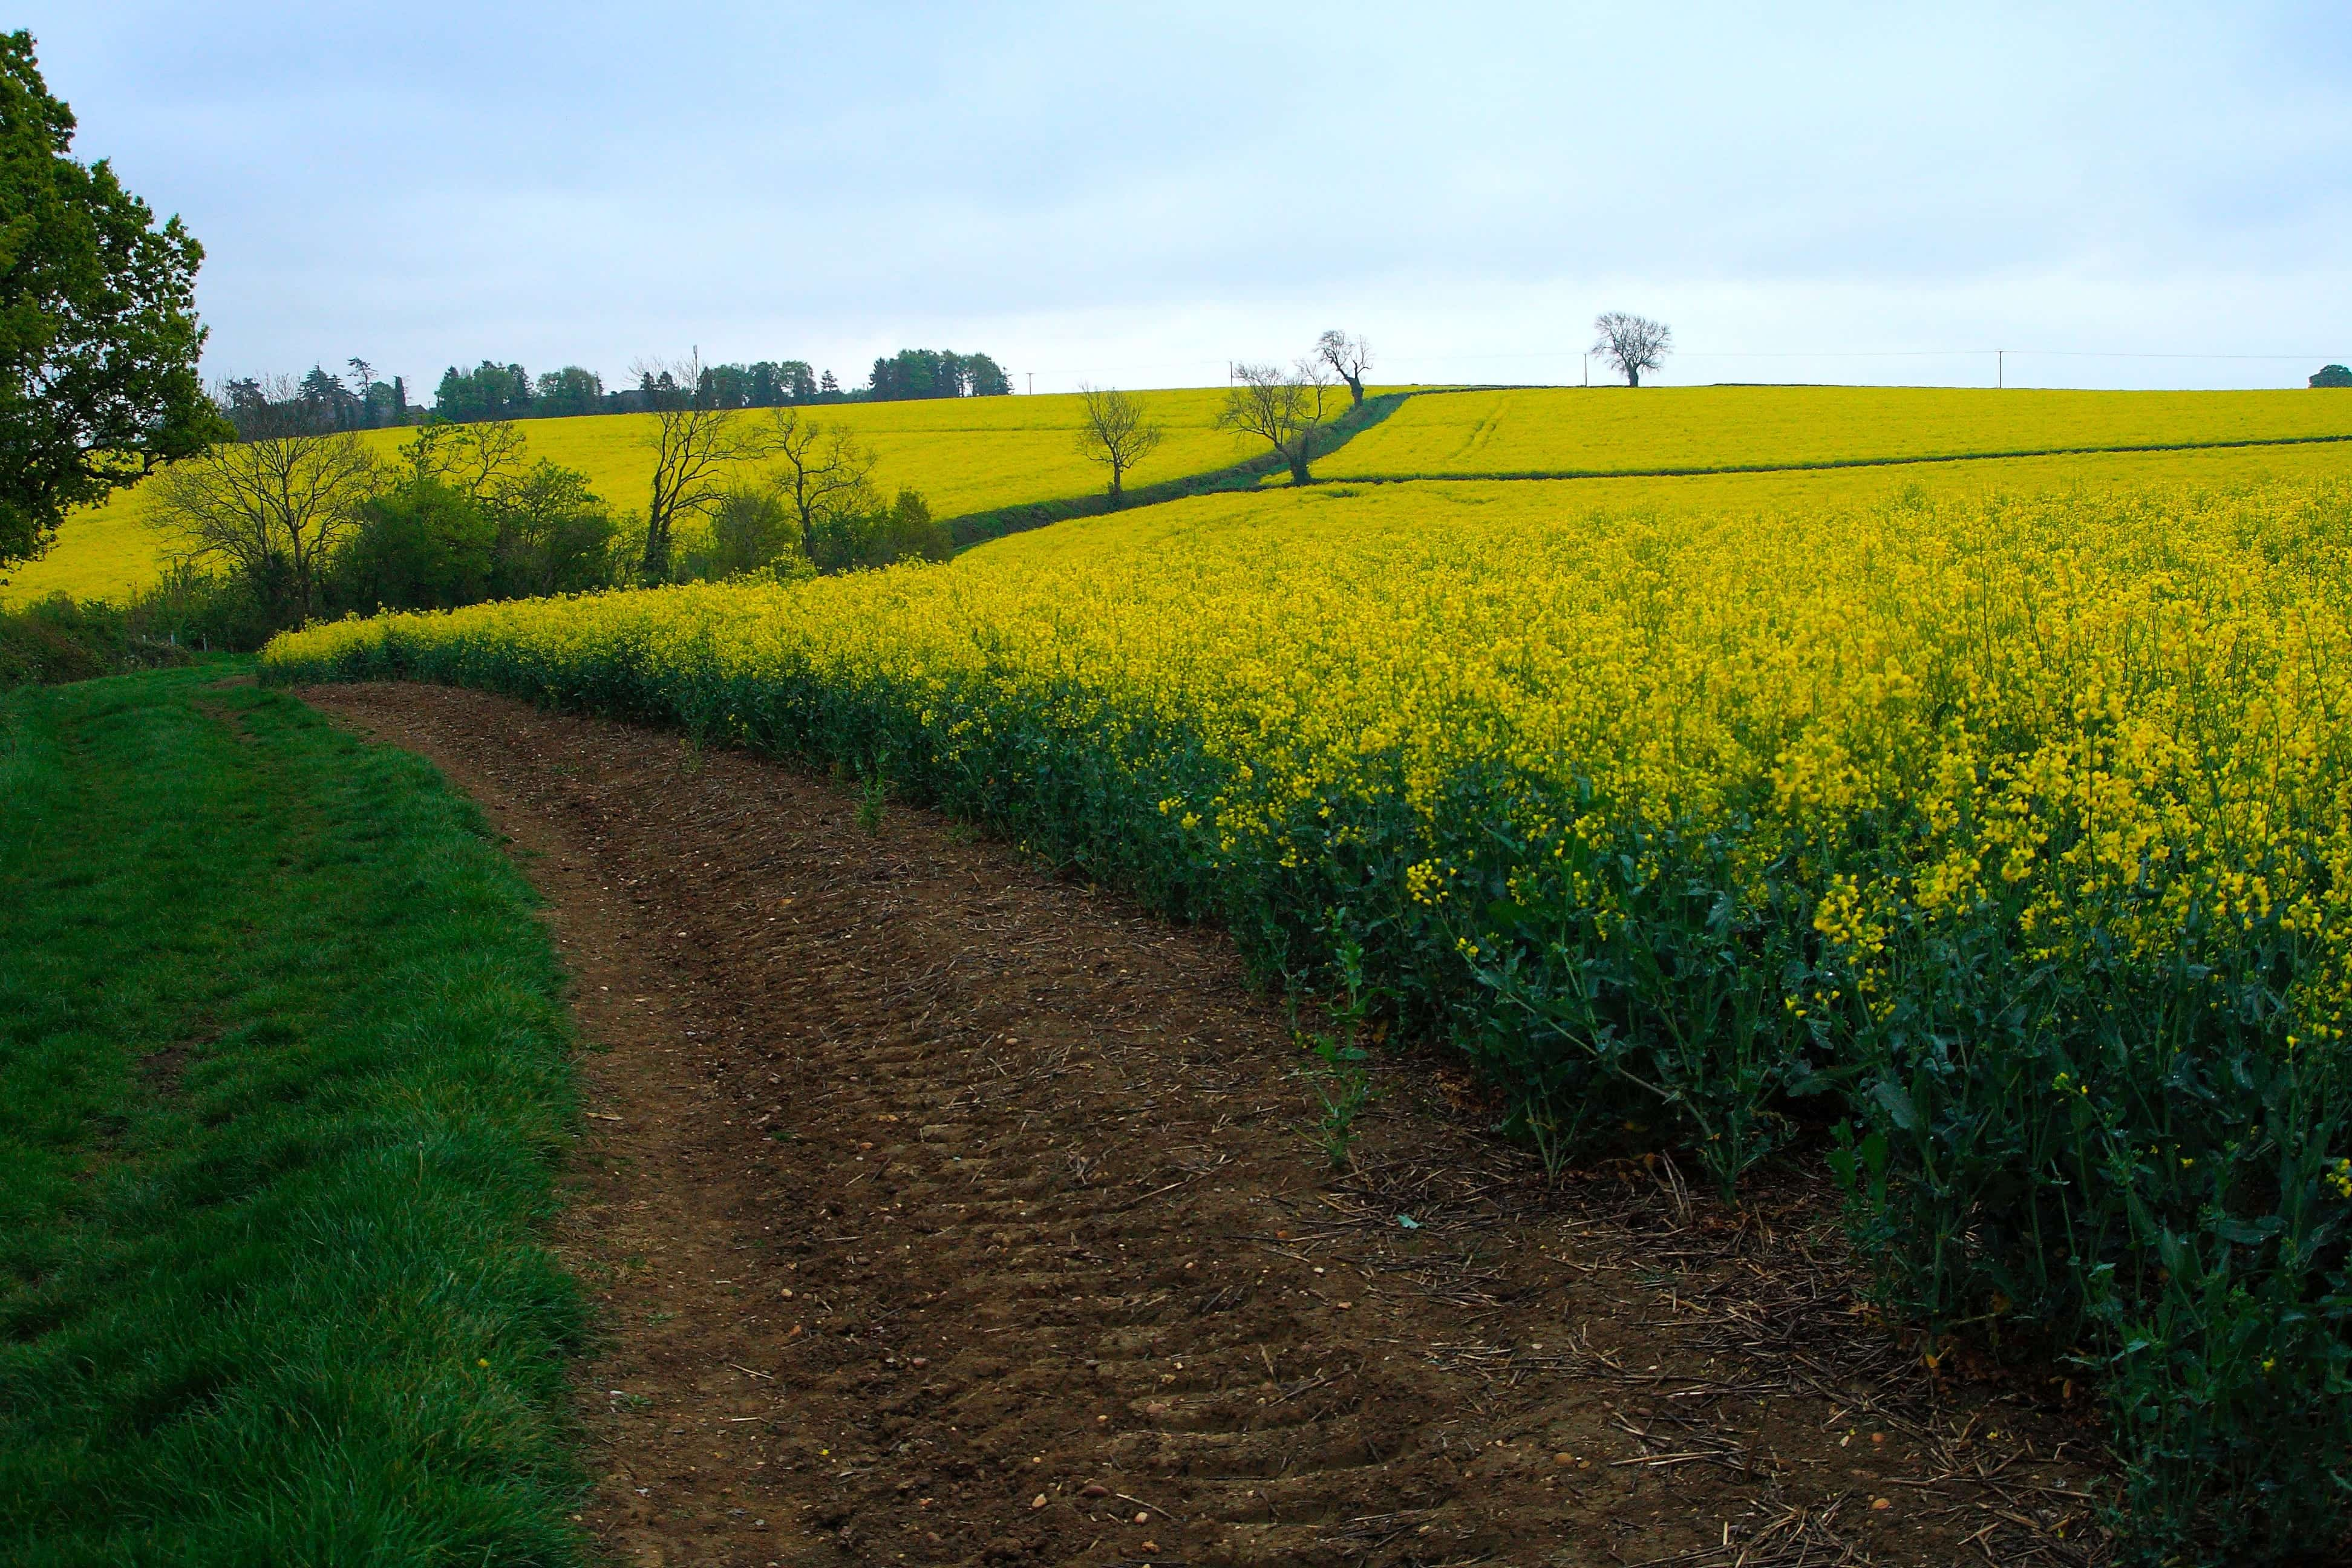 Dirt path running along field of yellow flowering plants; image by Benjamin Jameson, via Unsplash.com.